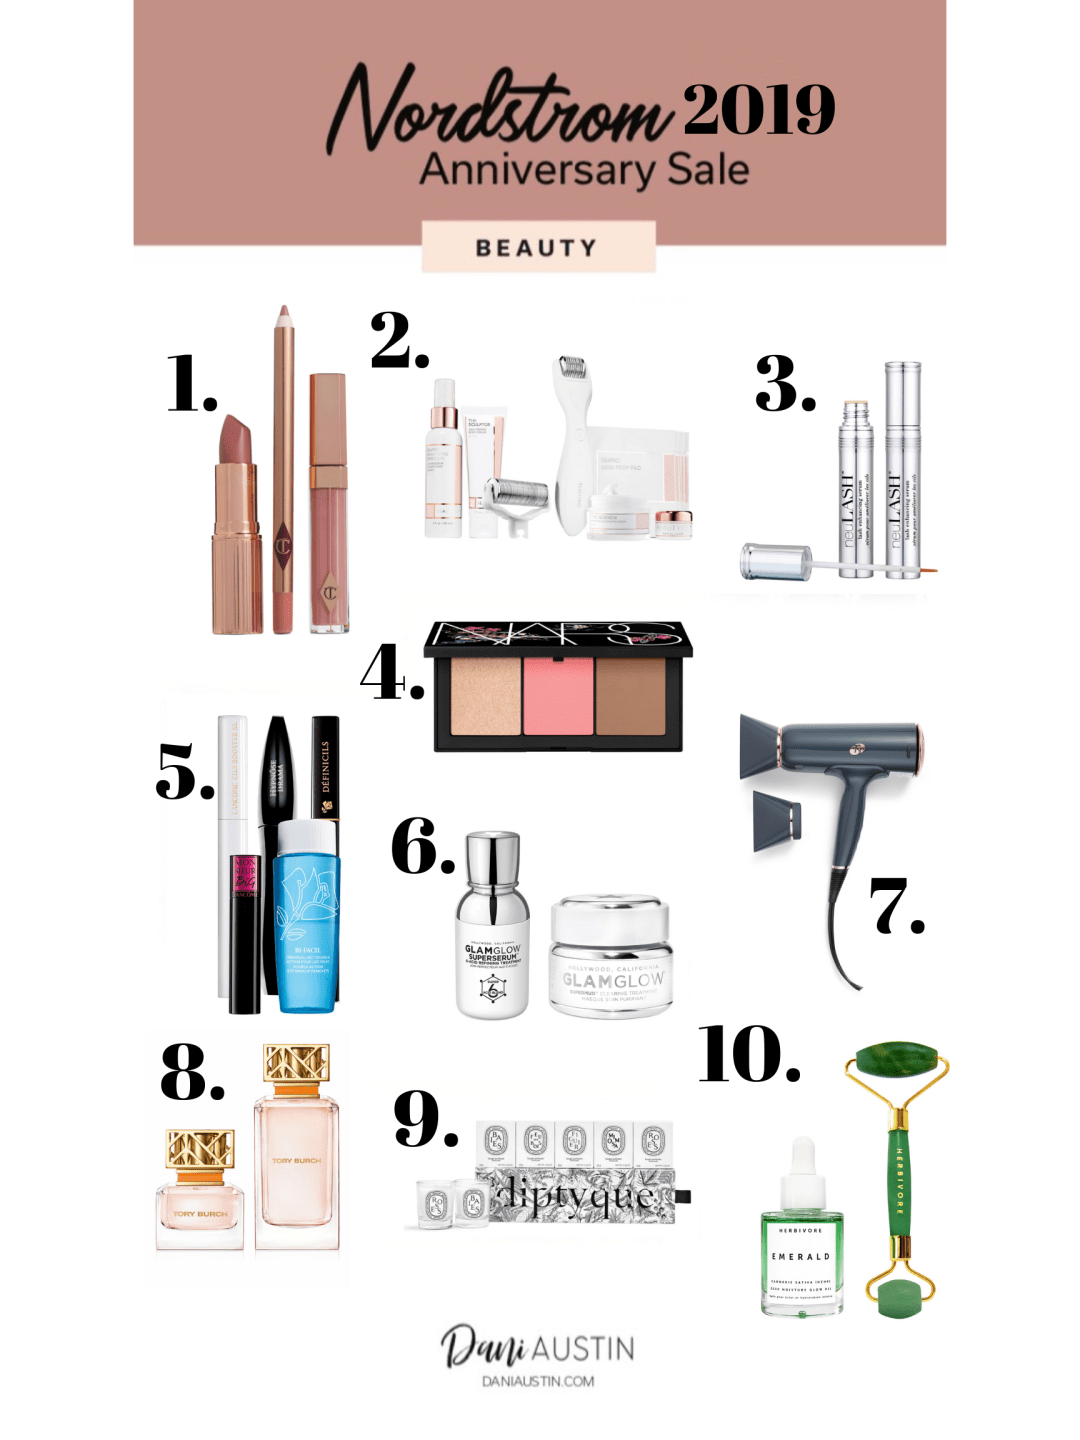 dani austin nordstrom anniversary beauty finds